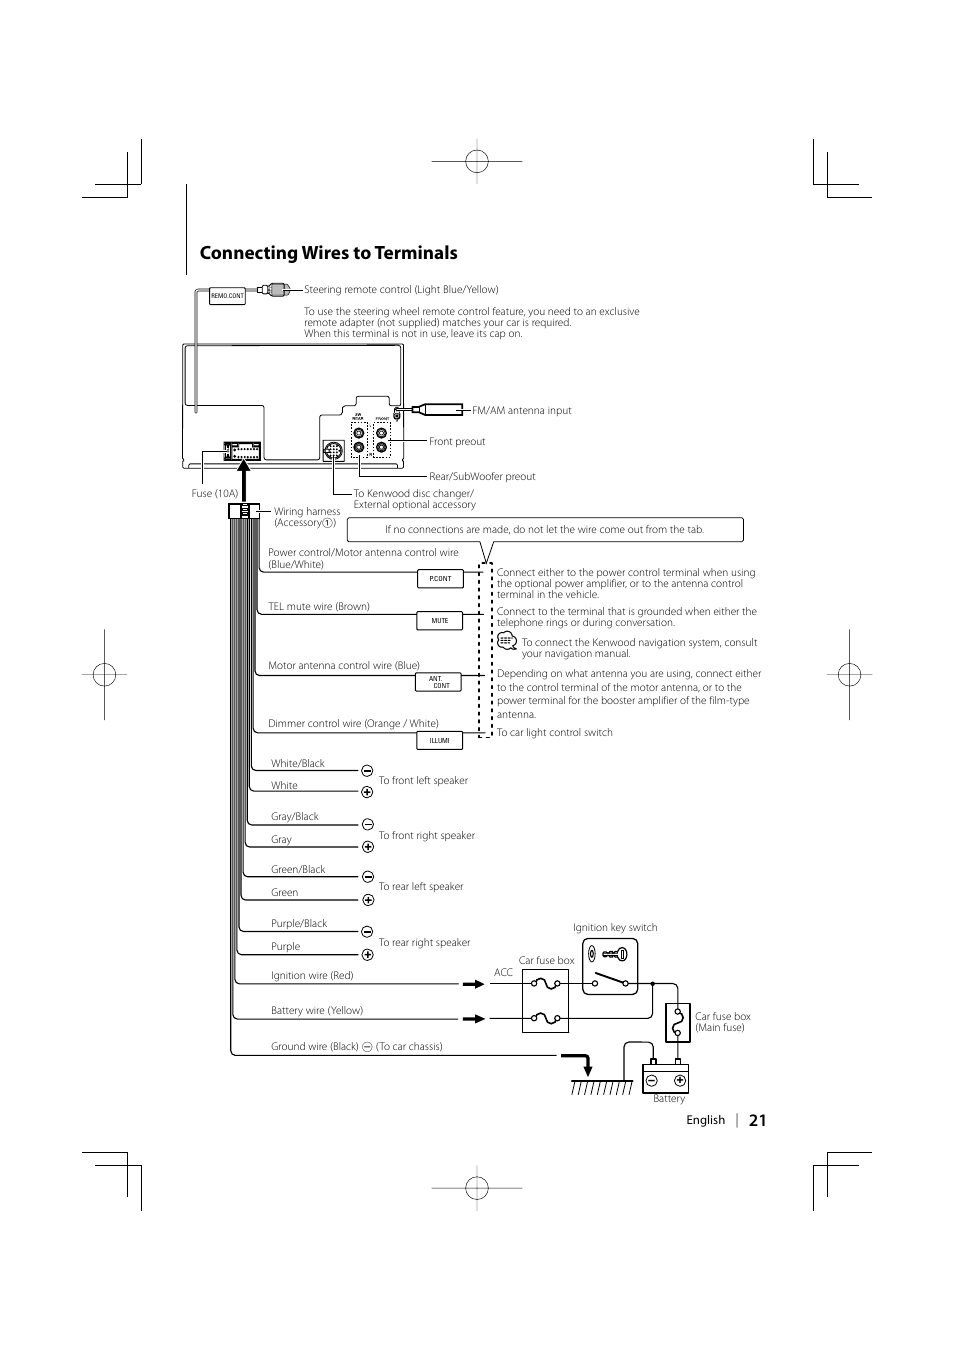 Wiring diagram kenwood dpx information of wiring diagram connecting wires to terminals kenwood dpx mp3110 user manual rh manualsdir com wiring diagram for kenwood dpx500bt wiring diagram for kenwood dpx502bt asfbconference2016 Gallery